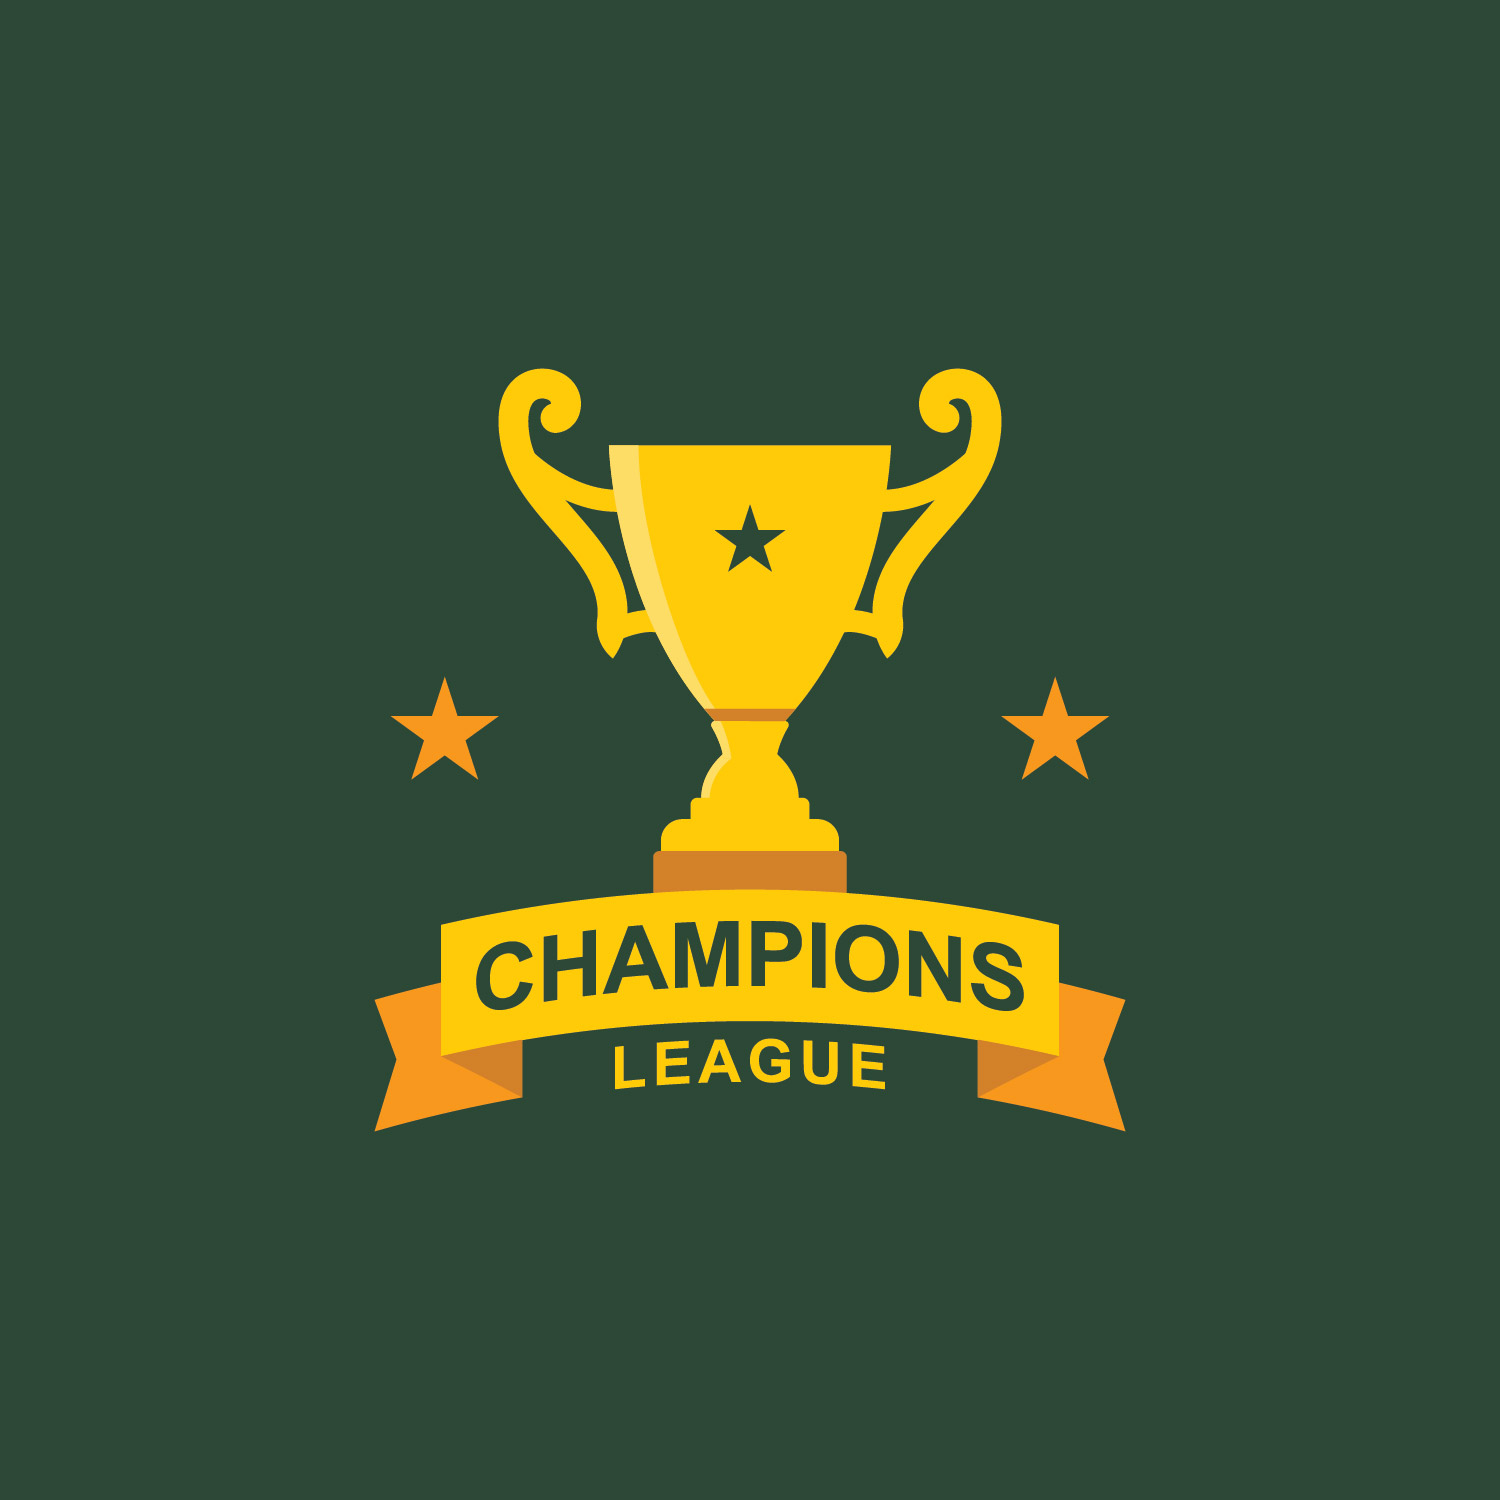 Champions League: Champions League Logo Badge